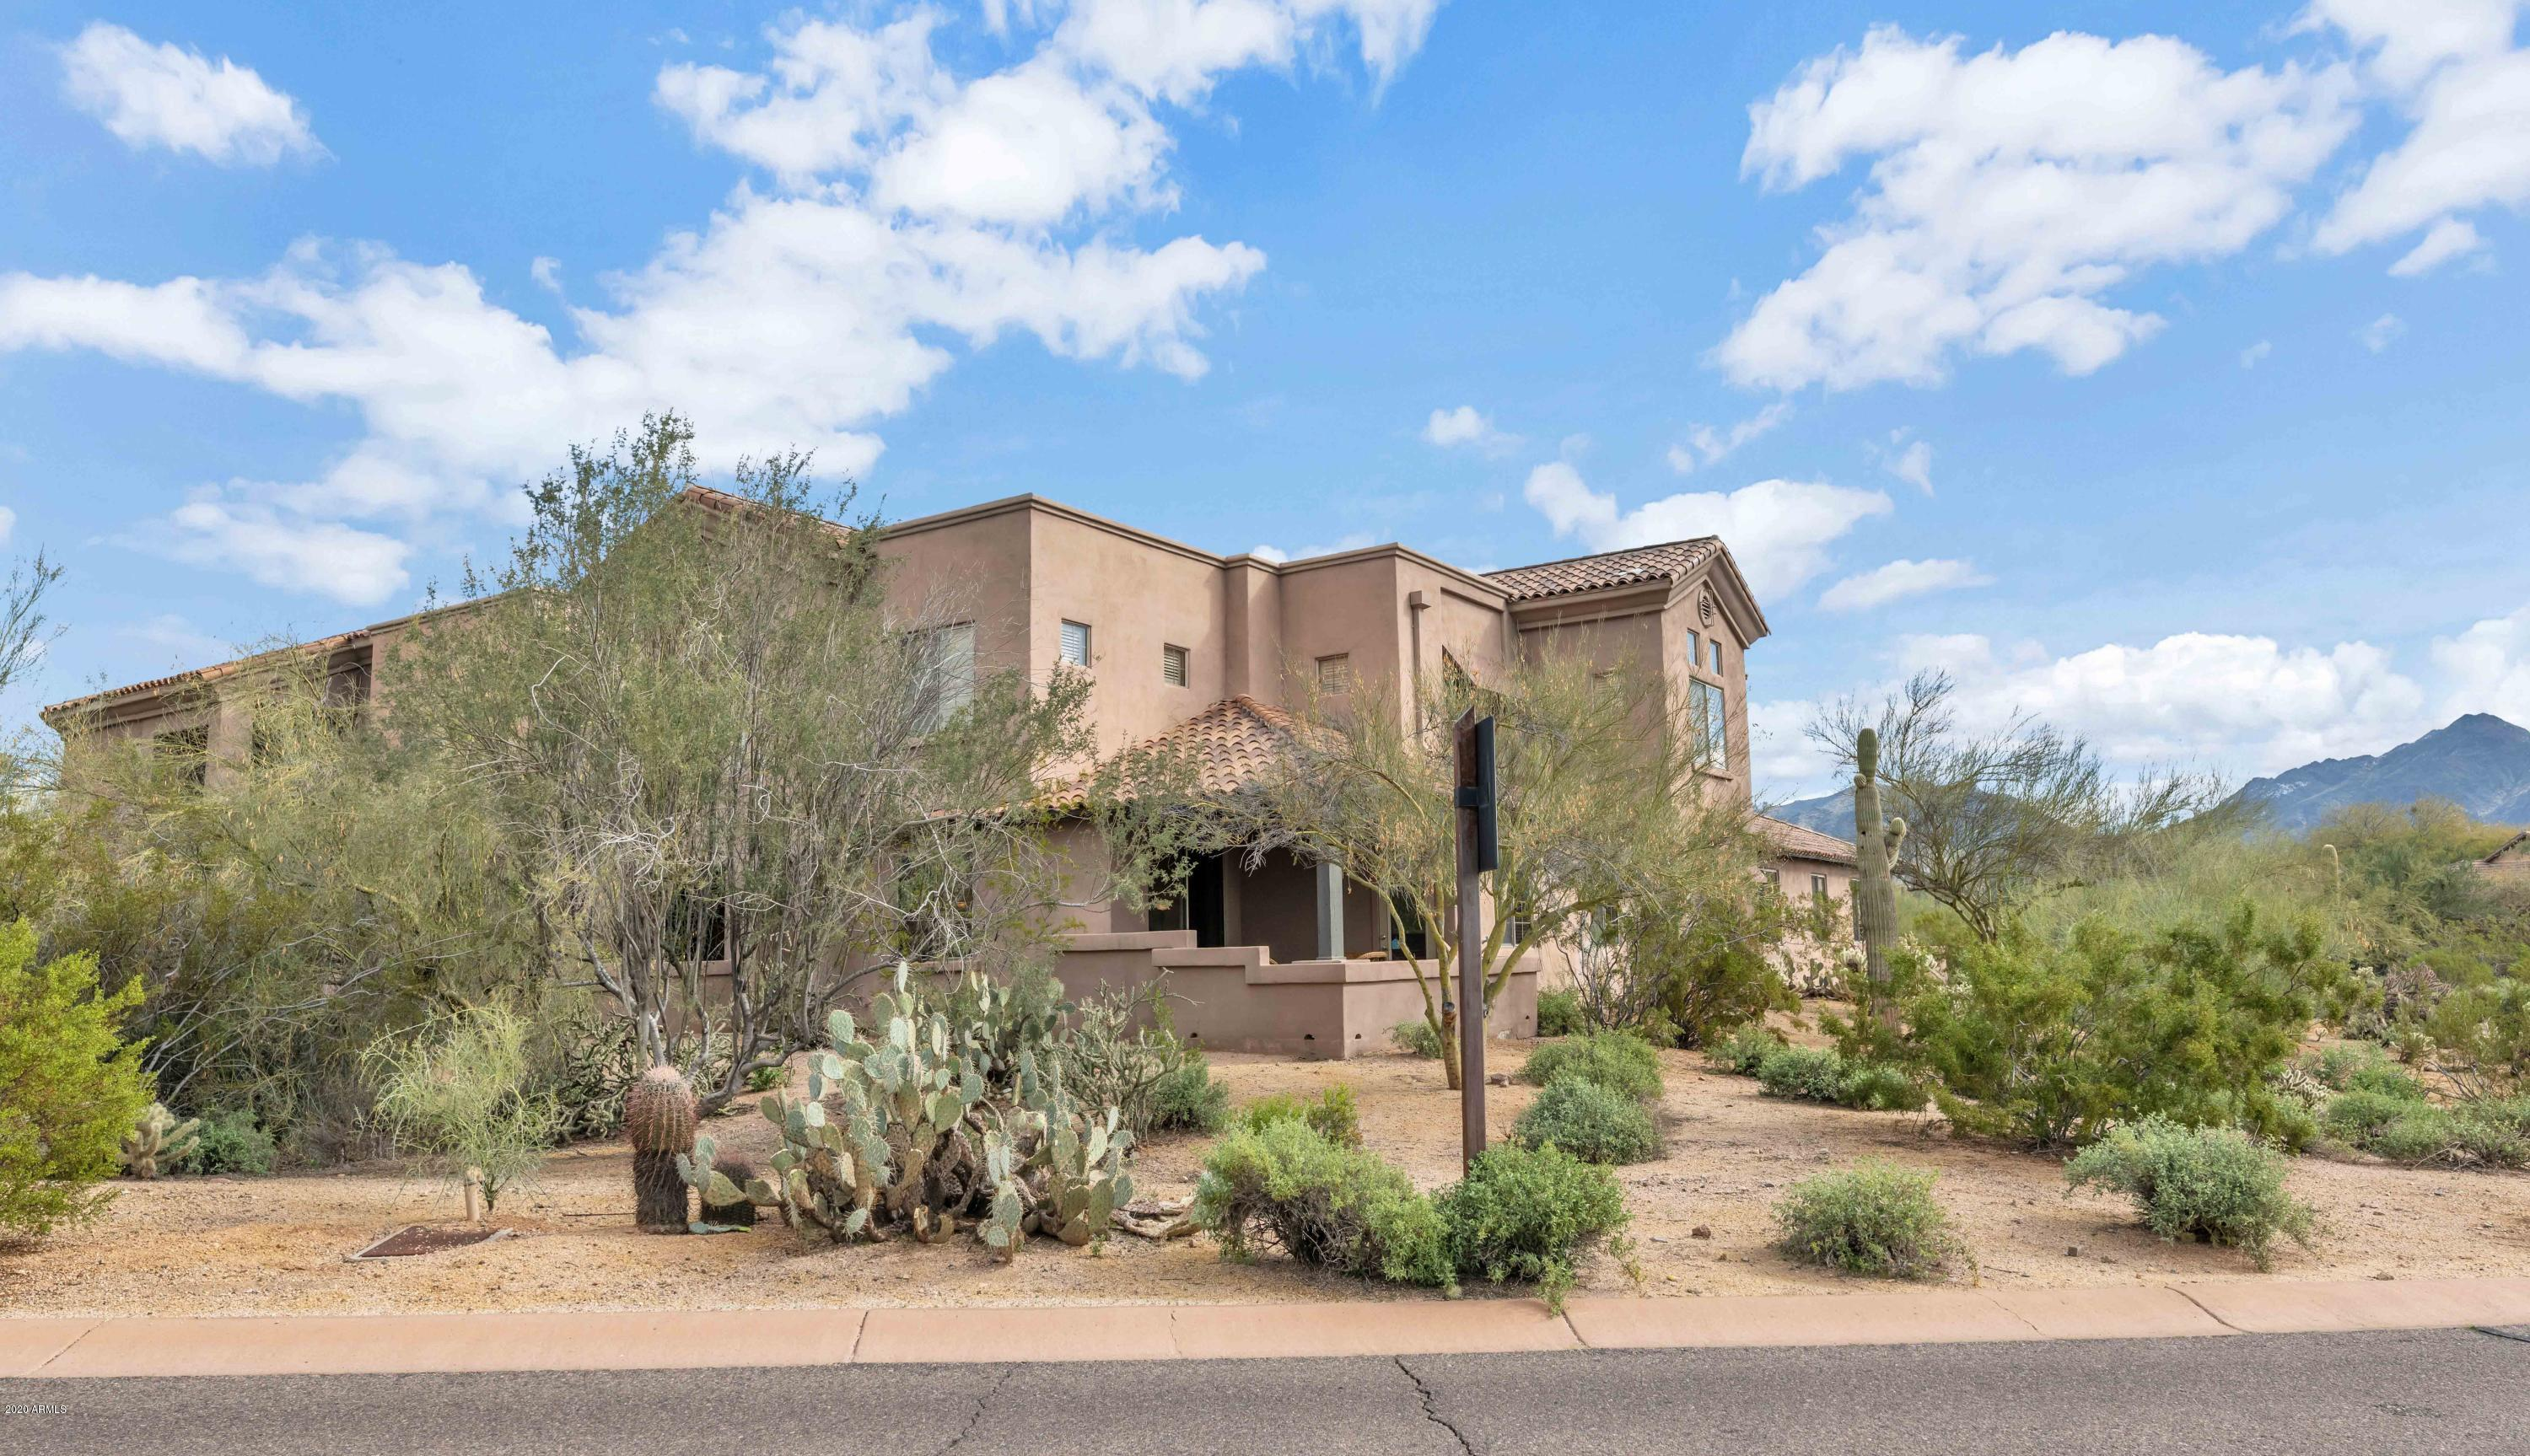 20801 N 90TH Place # 170, Scottsdale, AZ 85255, 3 Bedrooms Bedrooms, ,Residential Lease,For Rent,20801 N 90TH Place # 170,6277690